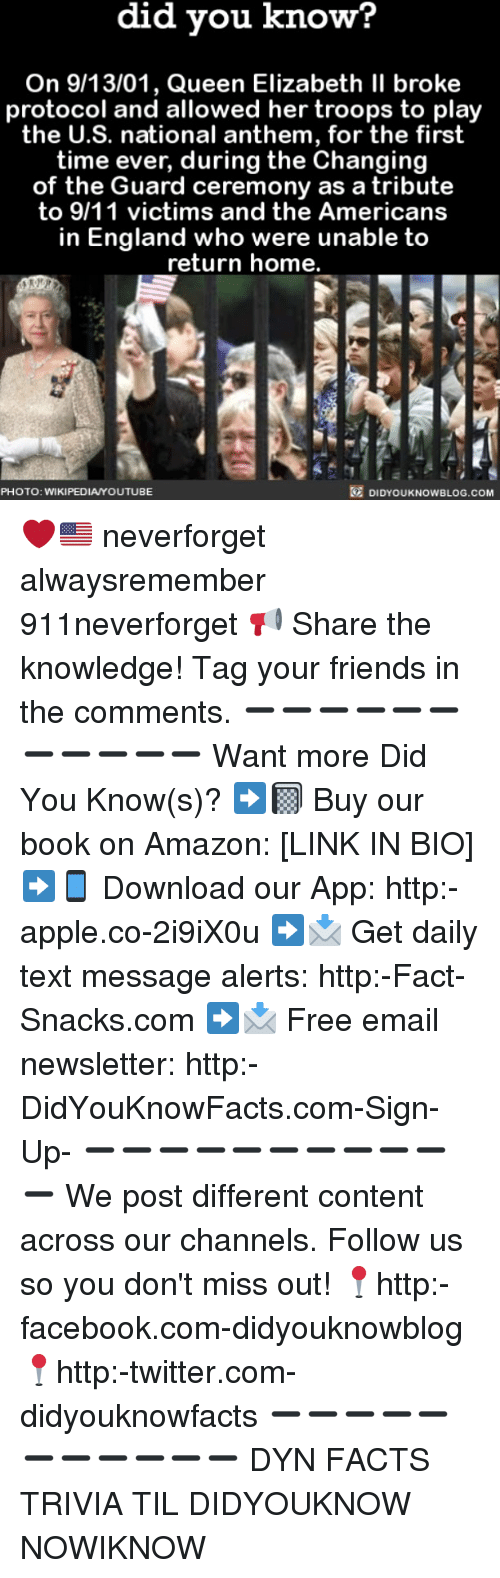 9/11, Amazon, and Apple: did you know?  On 9/13/01, Queen Elizabeth II broke  protocol and allowed her troops to play  the U.S. national anthem, for the first  time ever, during the Changing  of the Guard ceremony as a tribute  to 9/11 victims and the Americans  in England who were unable to  return home.  DIDYOUKNOWBLOG.COM  PHOTO: WIKIPEDIAYOUTUBE ❤️🇺🇸 neverforget alwaysremember 911neverforget 📢 Share the knowledge! Tag your friends in the comments. ➖➖➖➖➖➖➖➖➖➖➖ Want more Did You Know(s)? ➡📓 Buy our book on Amazon: [LINK IN BIO] ➡📱 Download our App: http:-apple.co-2i9iX0u ➡📩 Get daily text message alerts: http:-Fact-Snacks.com ➡📩 Free email newsletter: http:-DidYouKnowFacts.com-Sign-Up- ➖➖➖➖➖➖➖➖➖➖➖ We post different content across our channels. Follow us so you don't miss out! 📍http:-facebook.com-didyouknowblog 📍http:-twitter.com-didyouknowfacts ➖➖➖➖➖➖➖➖➖➖➖ DYN FACTS TRIVIA TIL DIDYOUKNOW NOWIKNOW